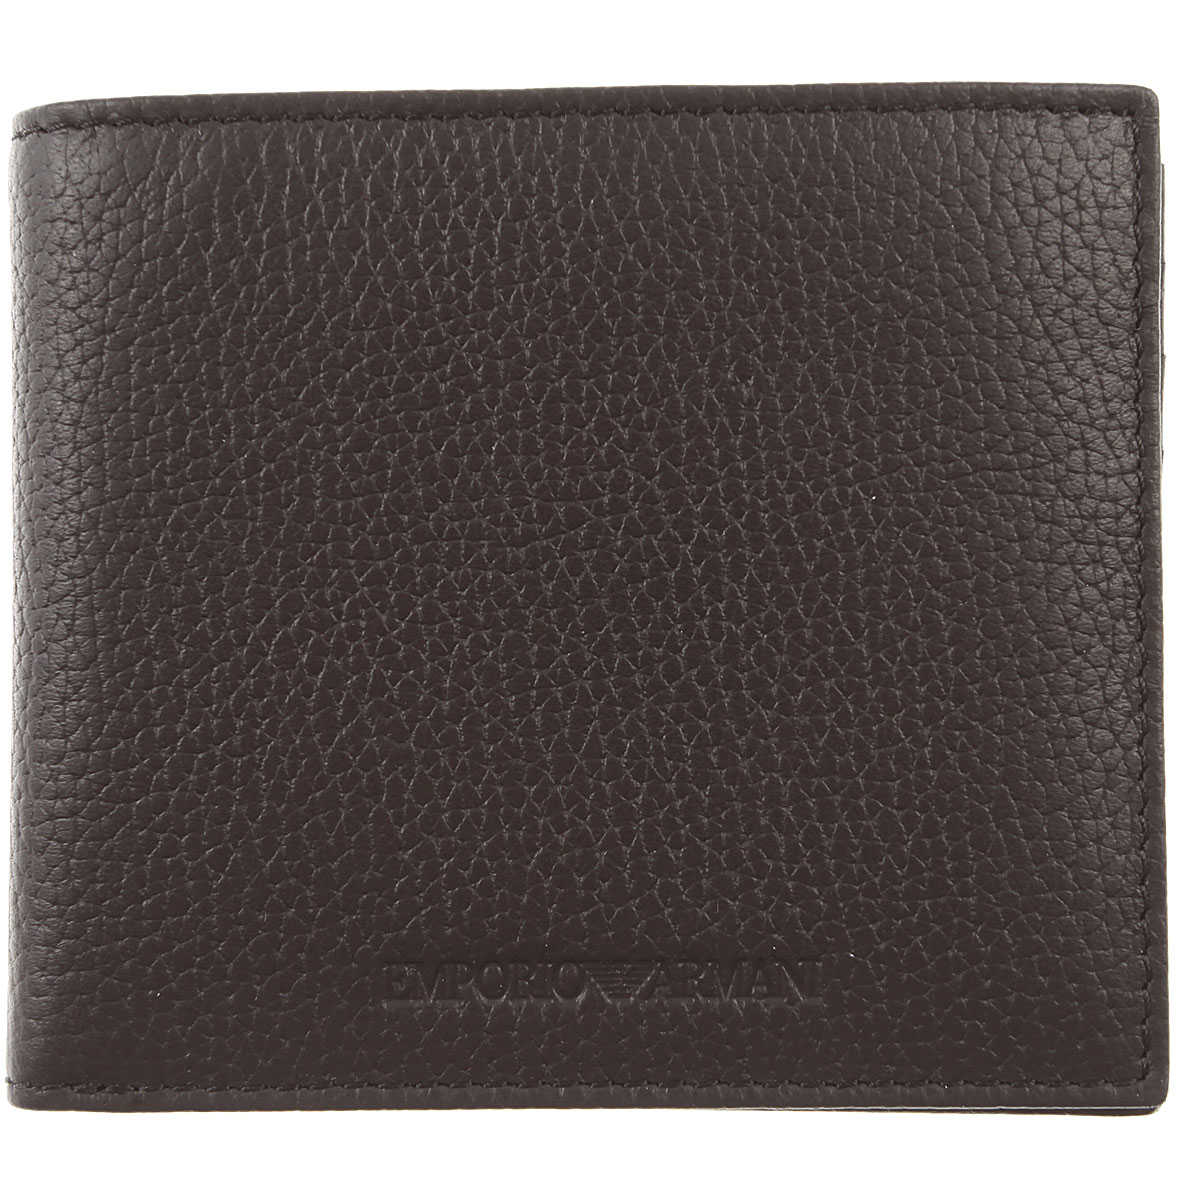 Emporio Armani Wallet for Men Black SE - GOOFASH